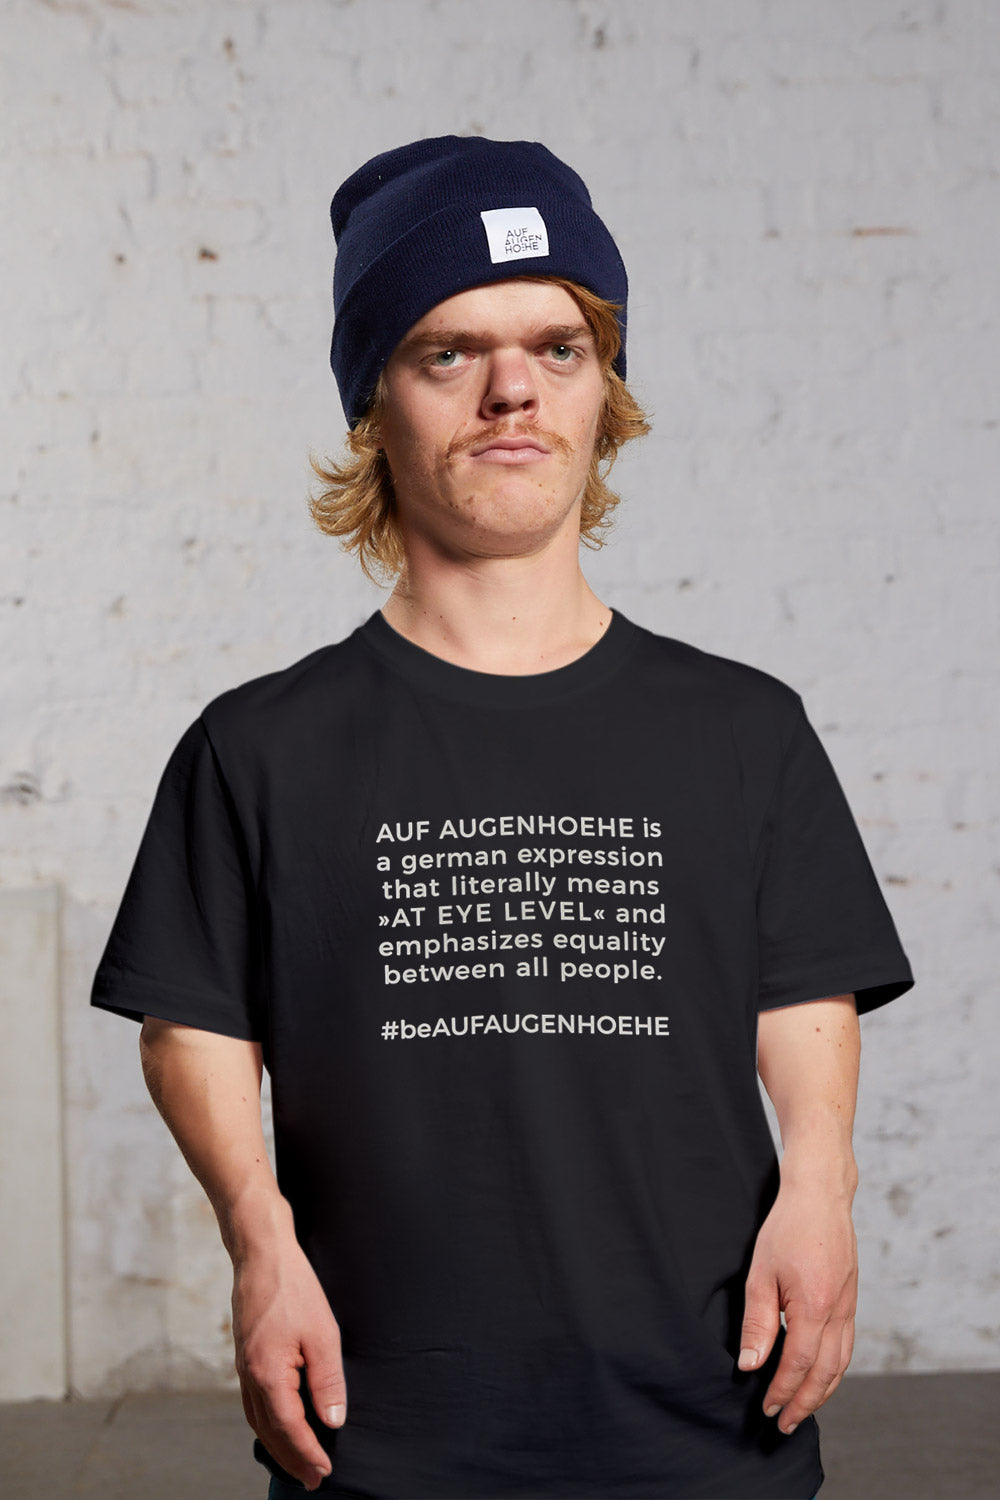 man with dwarfism wearing black shirt with a statement text